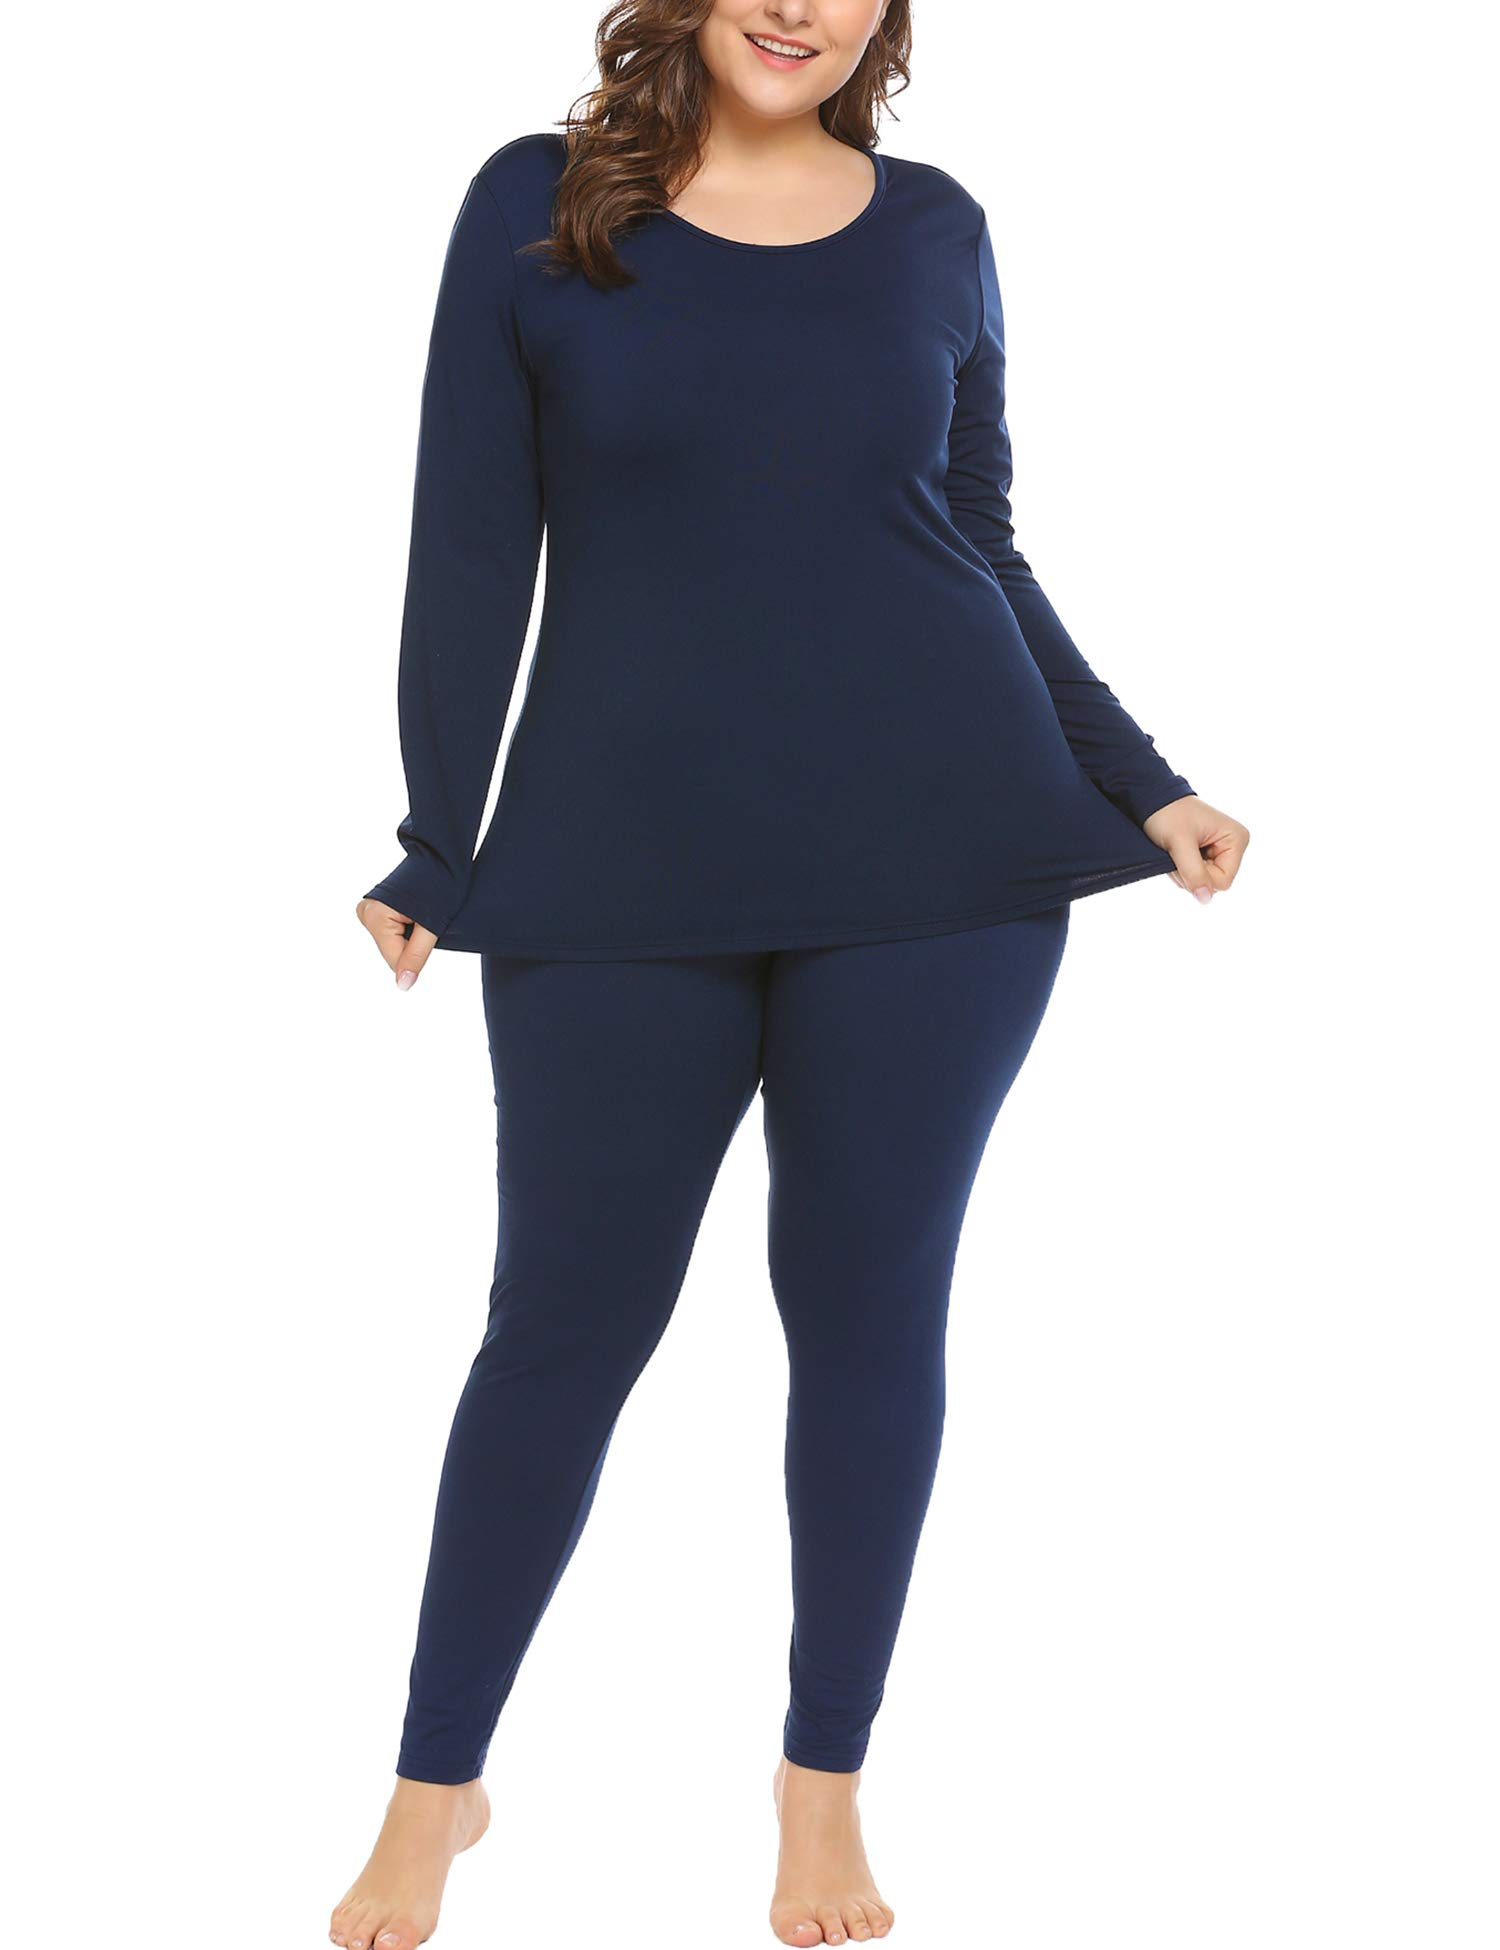 In'voland Women's Thermal Underwear Set Top & Bottom Fleece Lined Champlain Colour 22W by IN'VOLAND